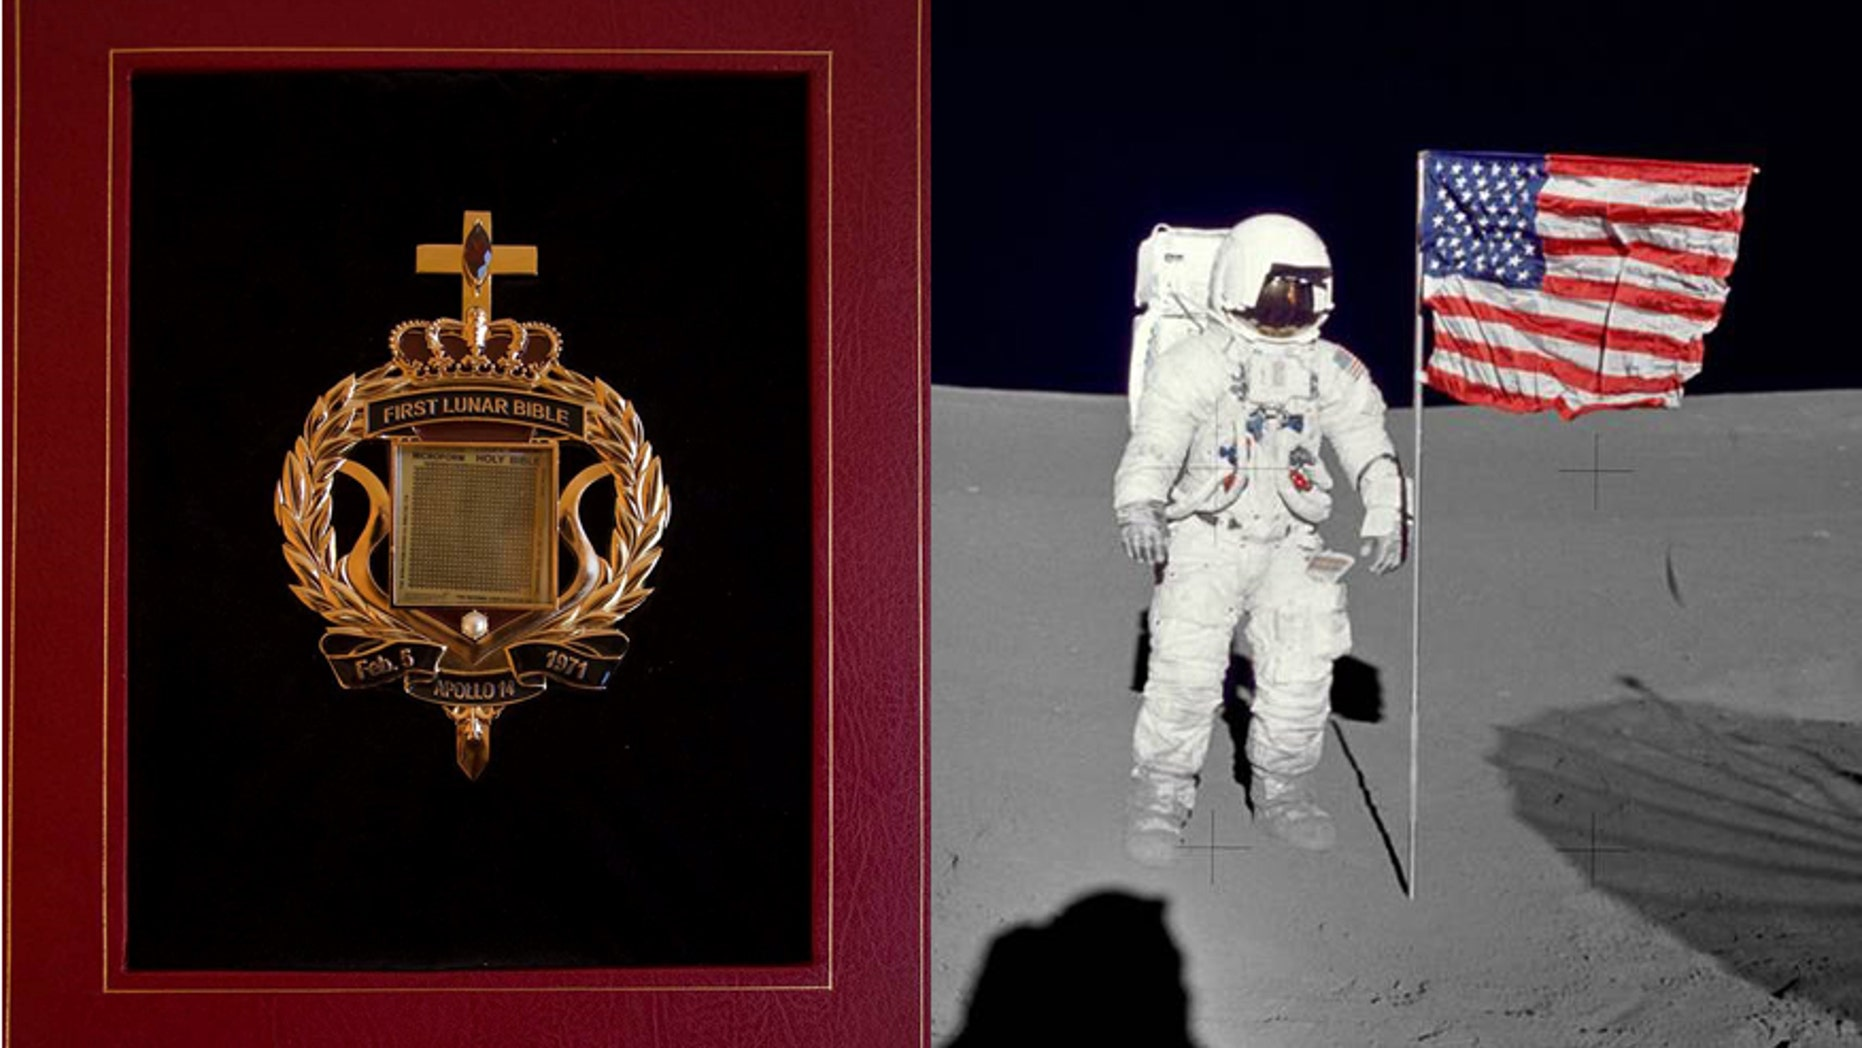 The tiny Bible that traveled to the Moon/File photo of astronaut Edgar Mitchell on the lunar surface (Nate D. Sanders Auctions/NASA)